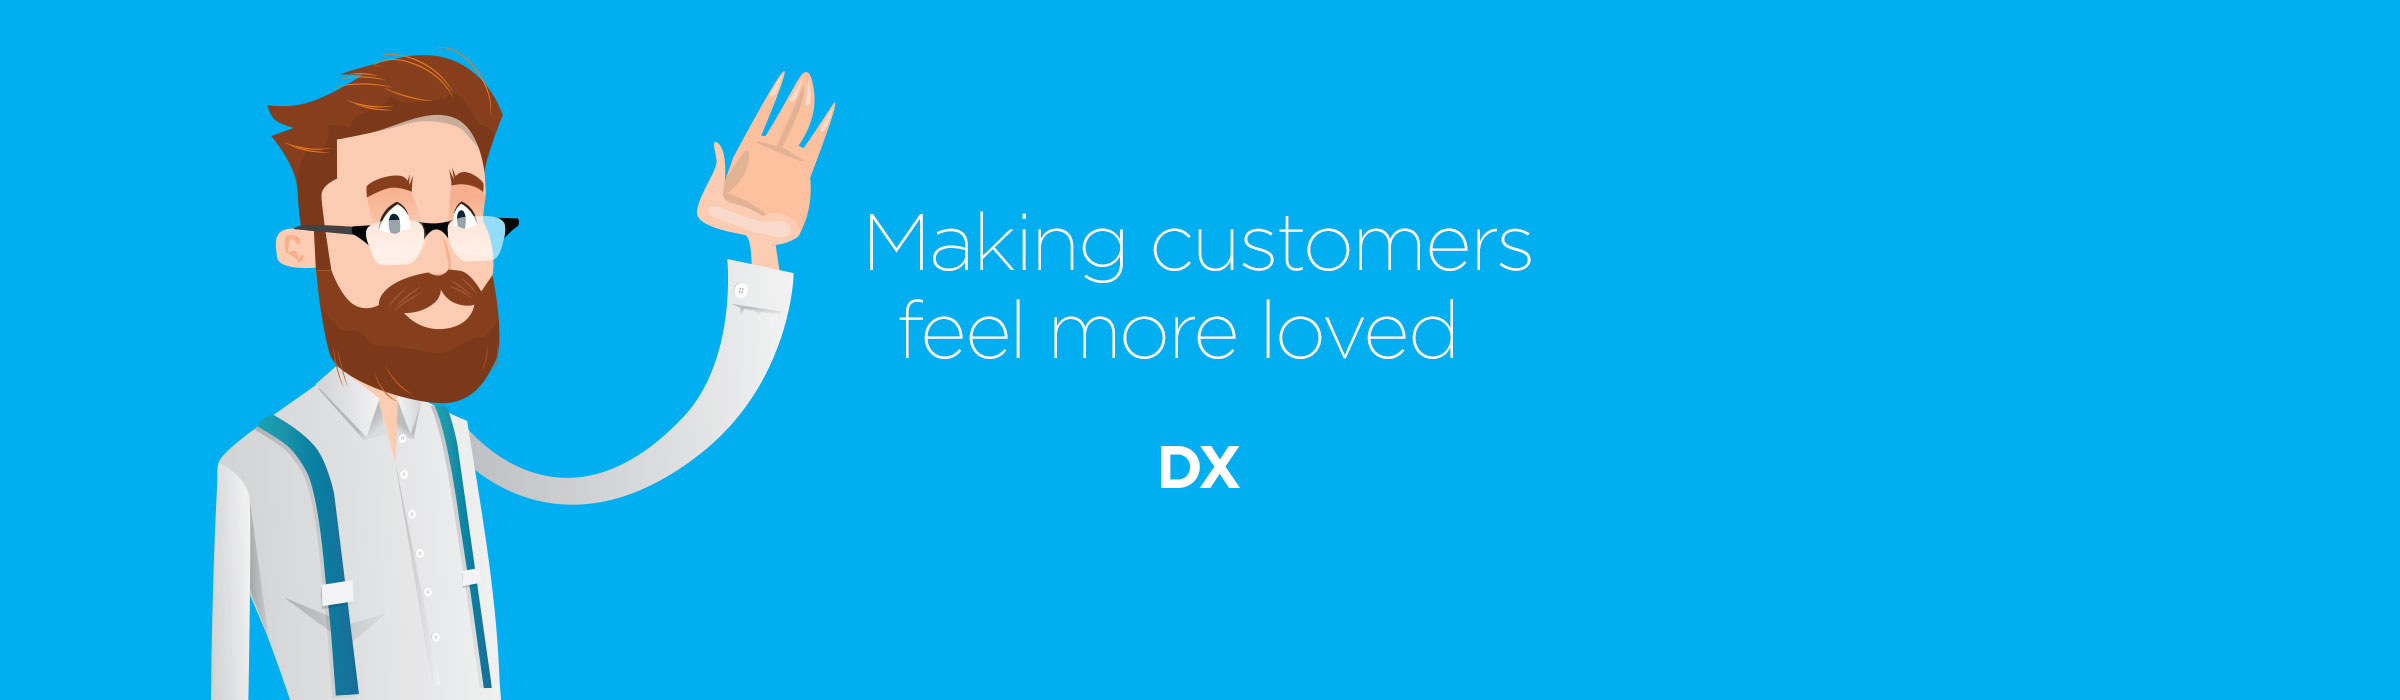 DX – Making customers feel more loved